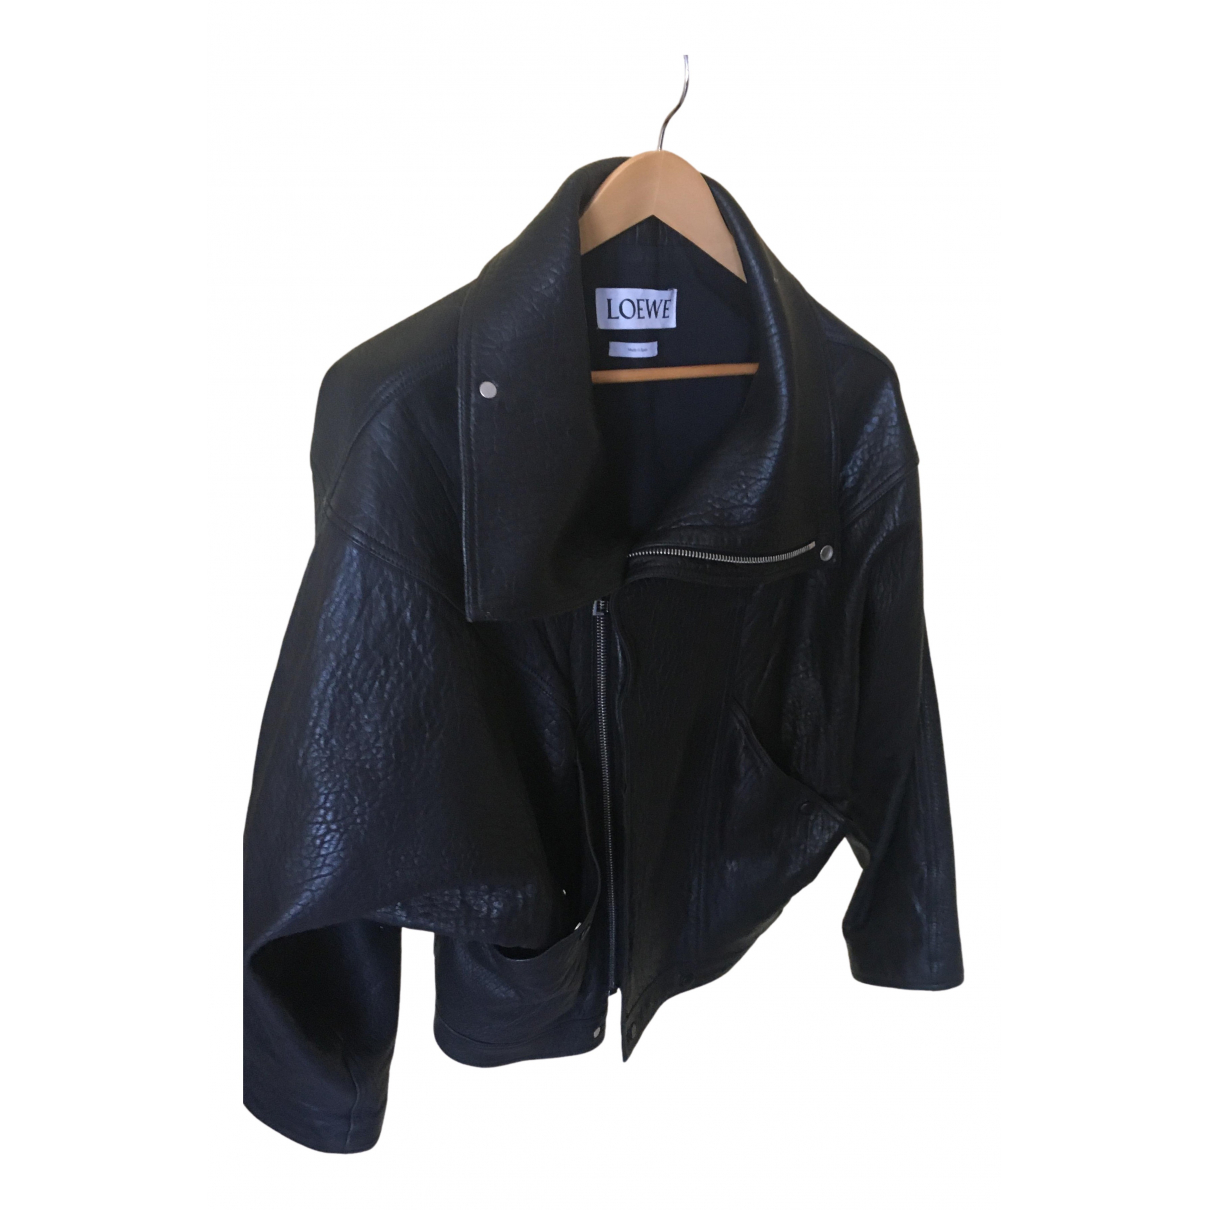 Loewe N Black Leather jacket  for Men 56 FR